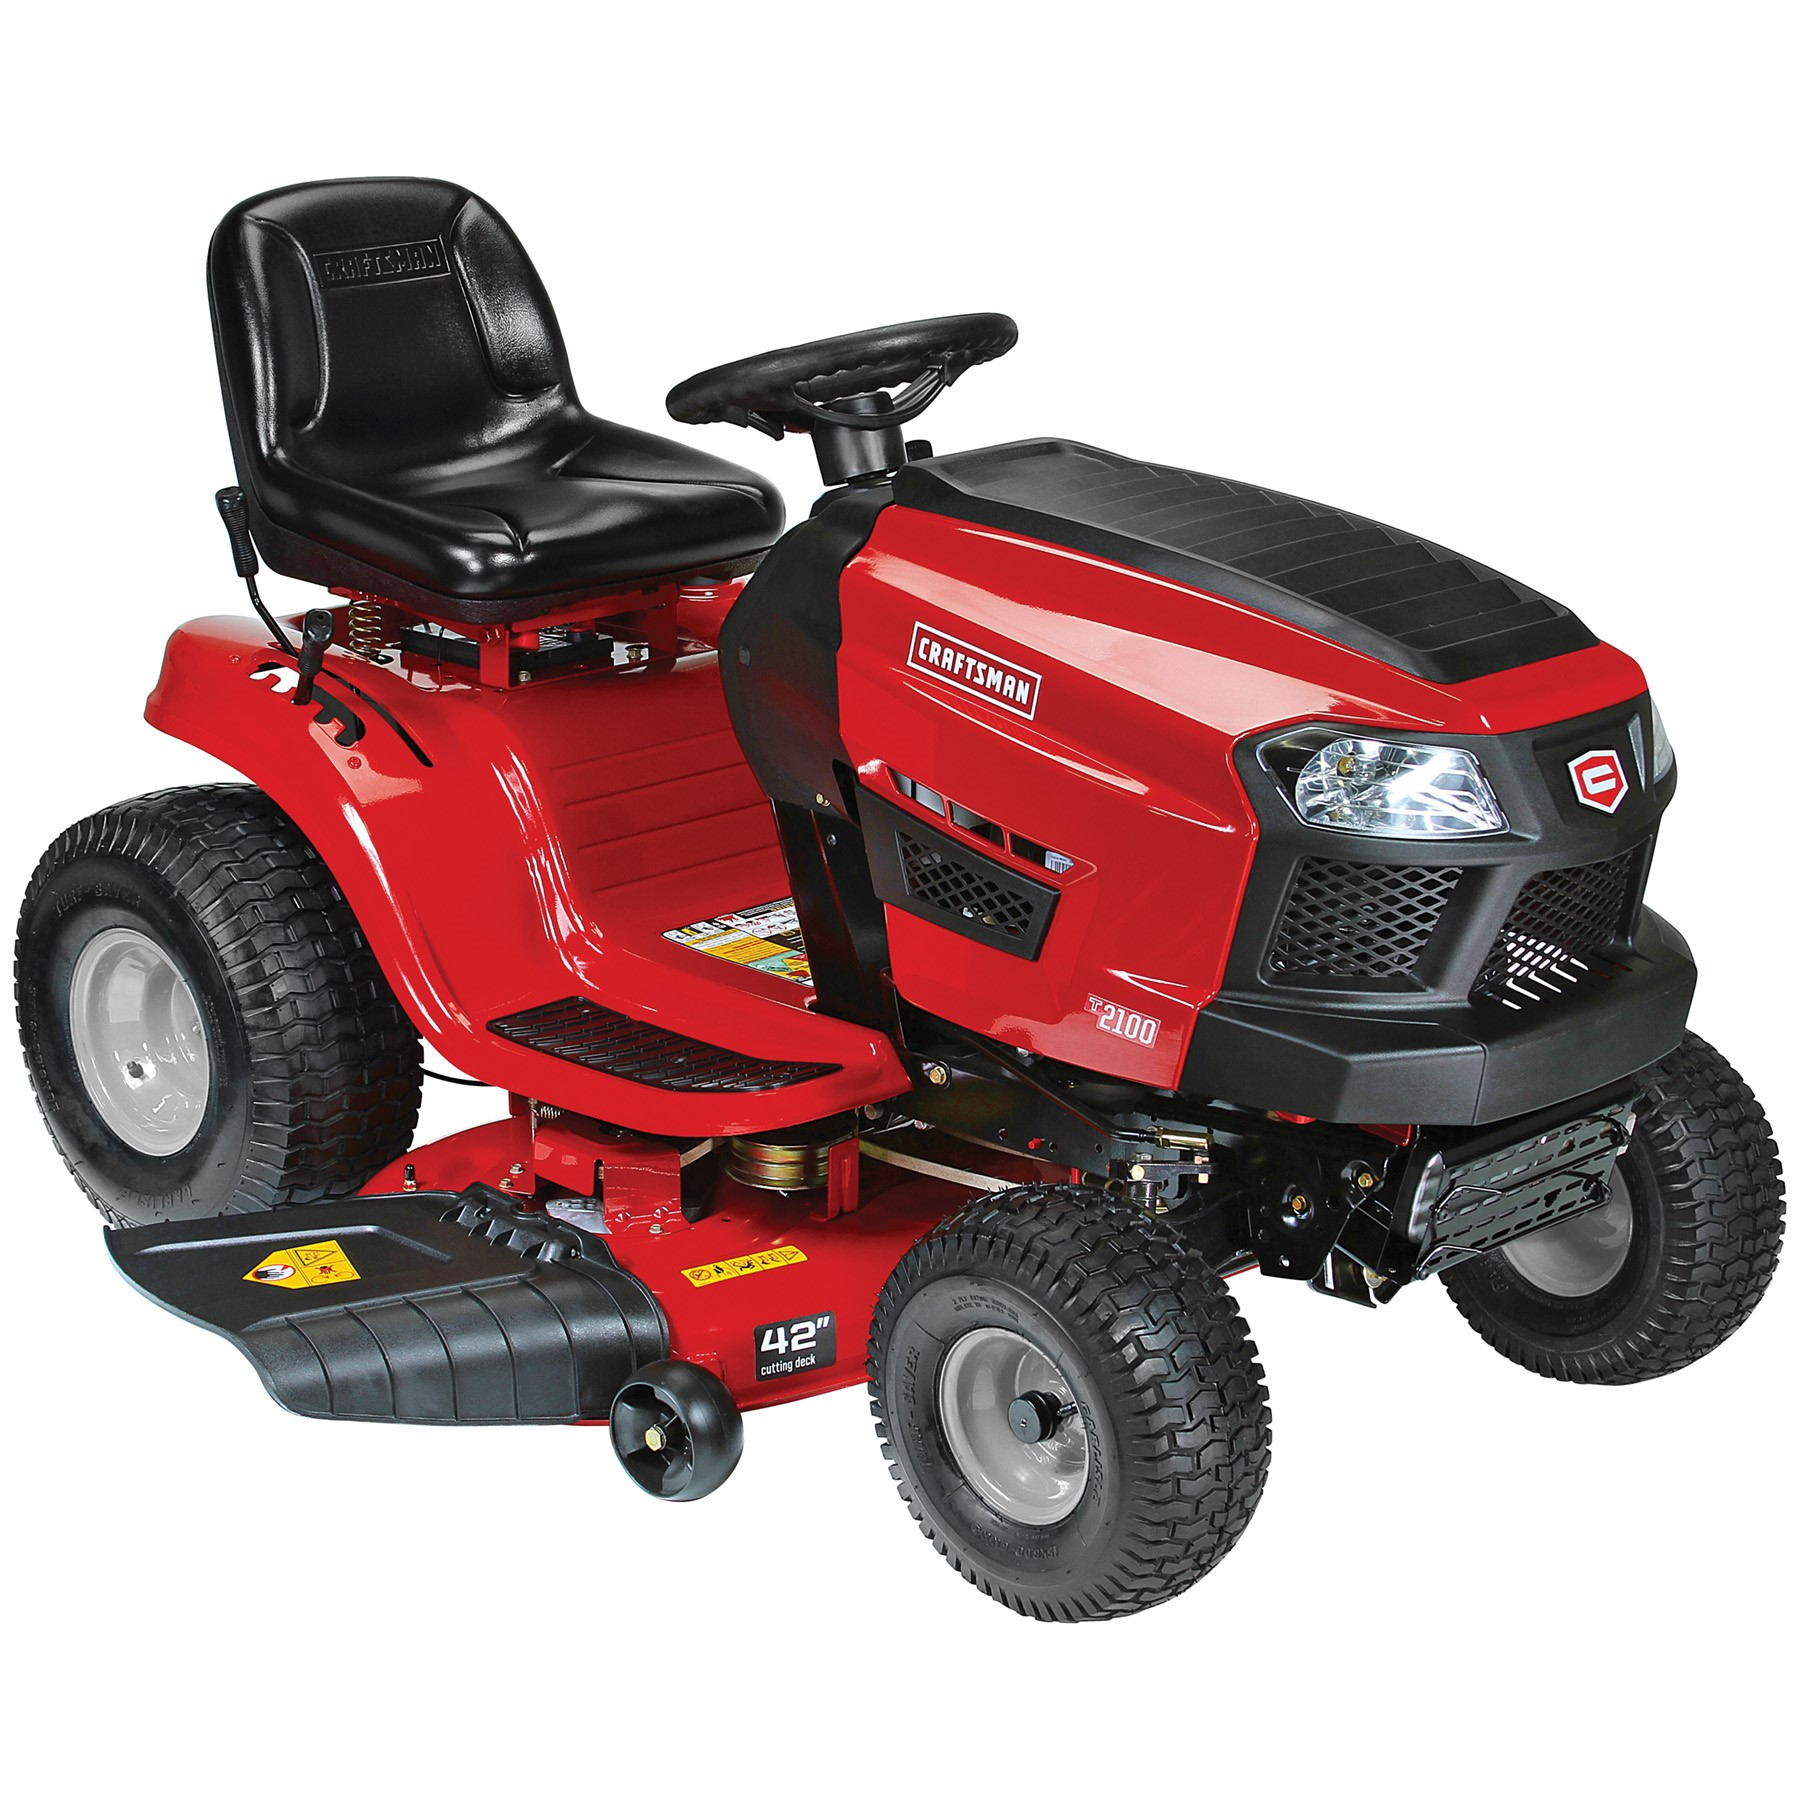 hight resolution of craftsman 25587 42 19 hp briggs stratton fender hydro automatic riding mower